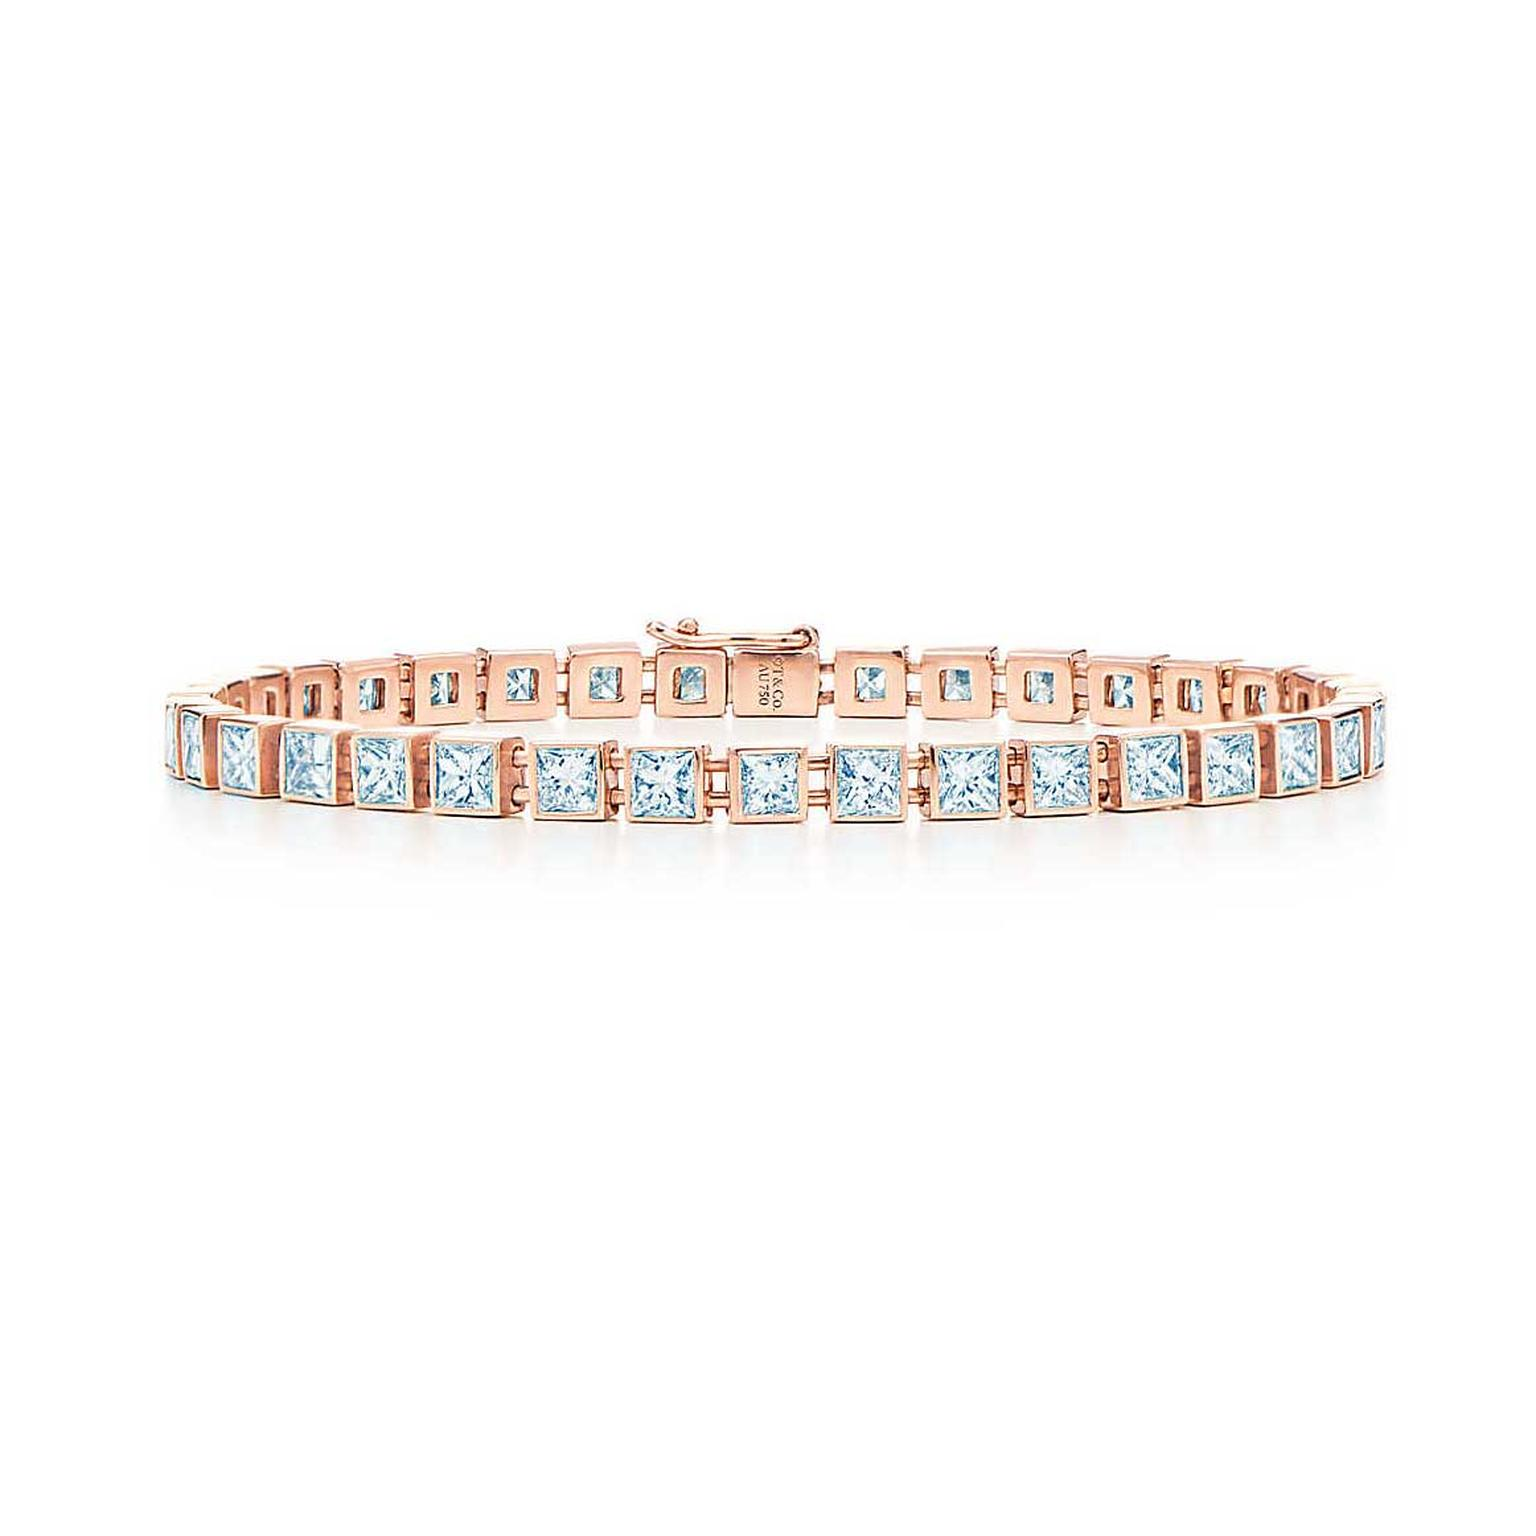 Tiffany diamond tennis bracelet in rose gold